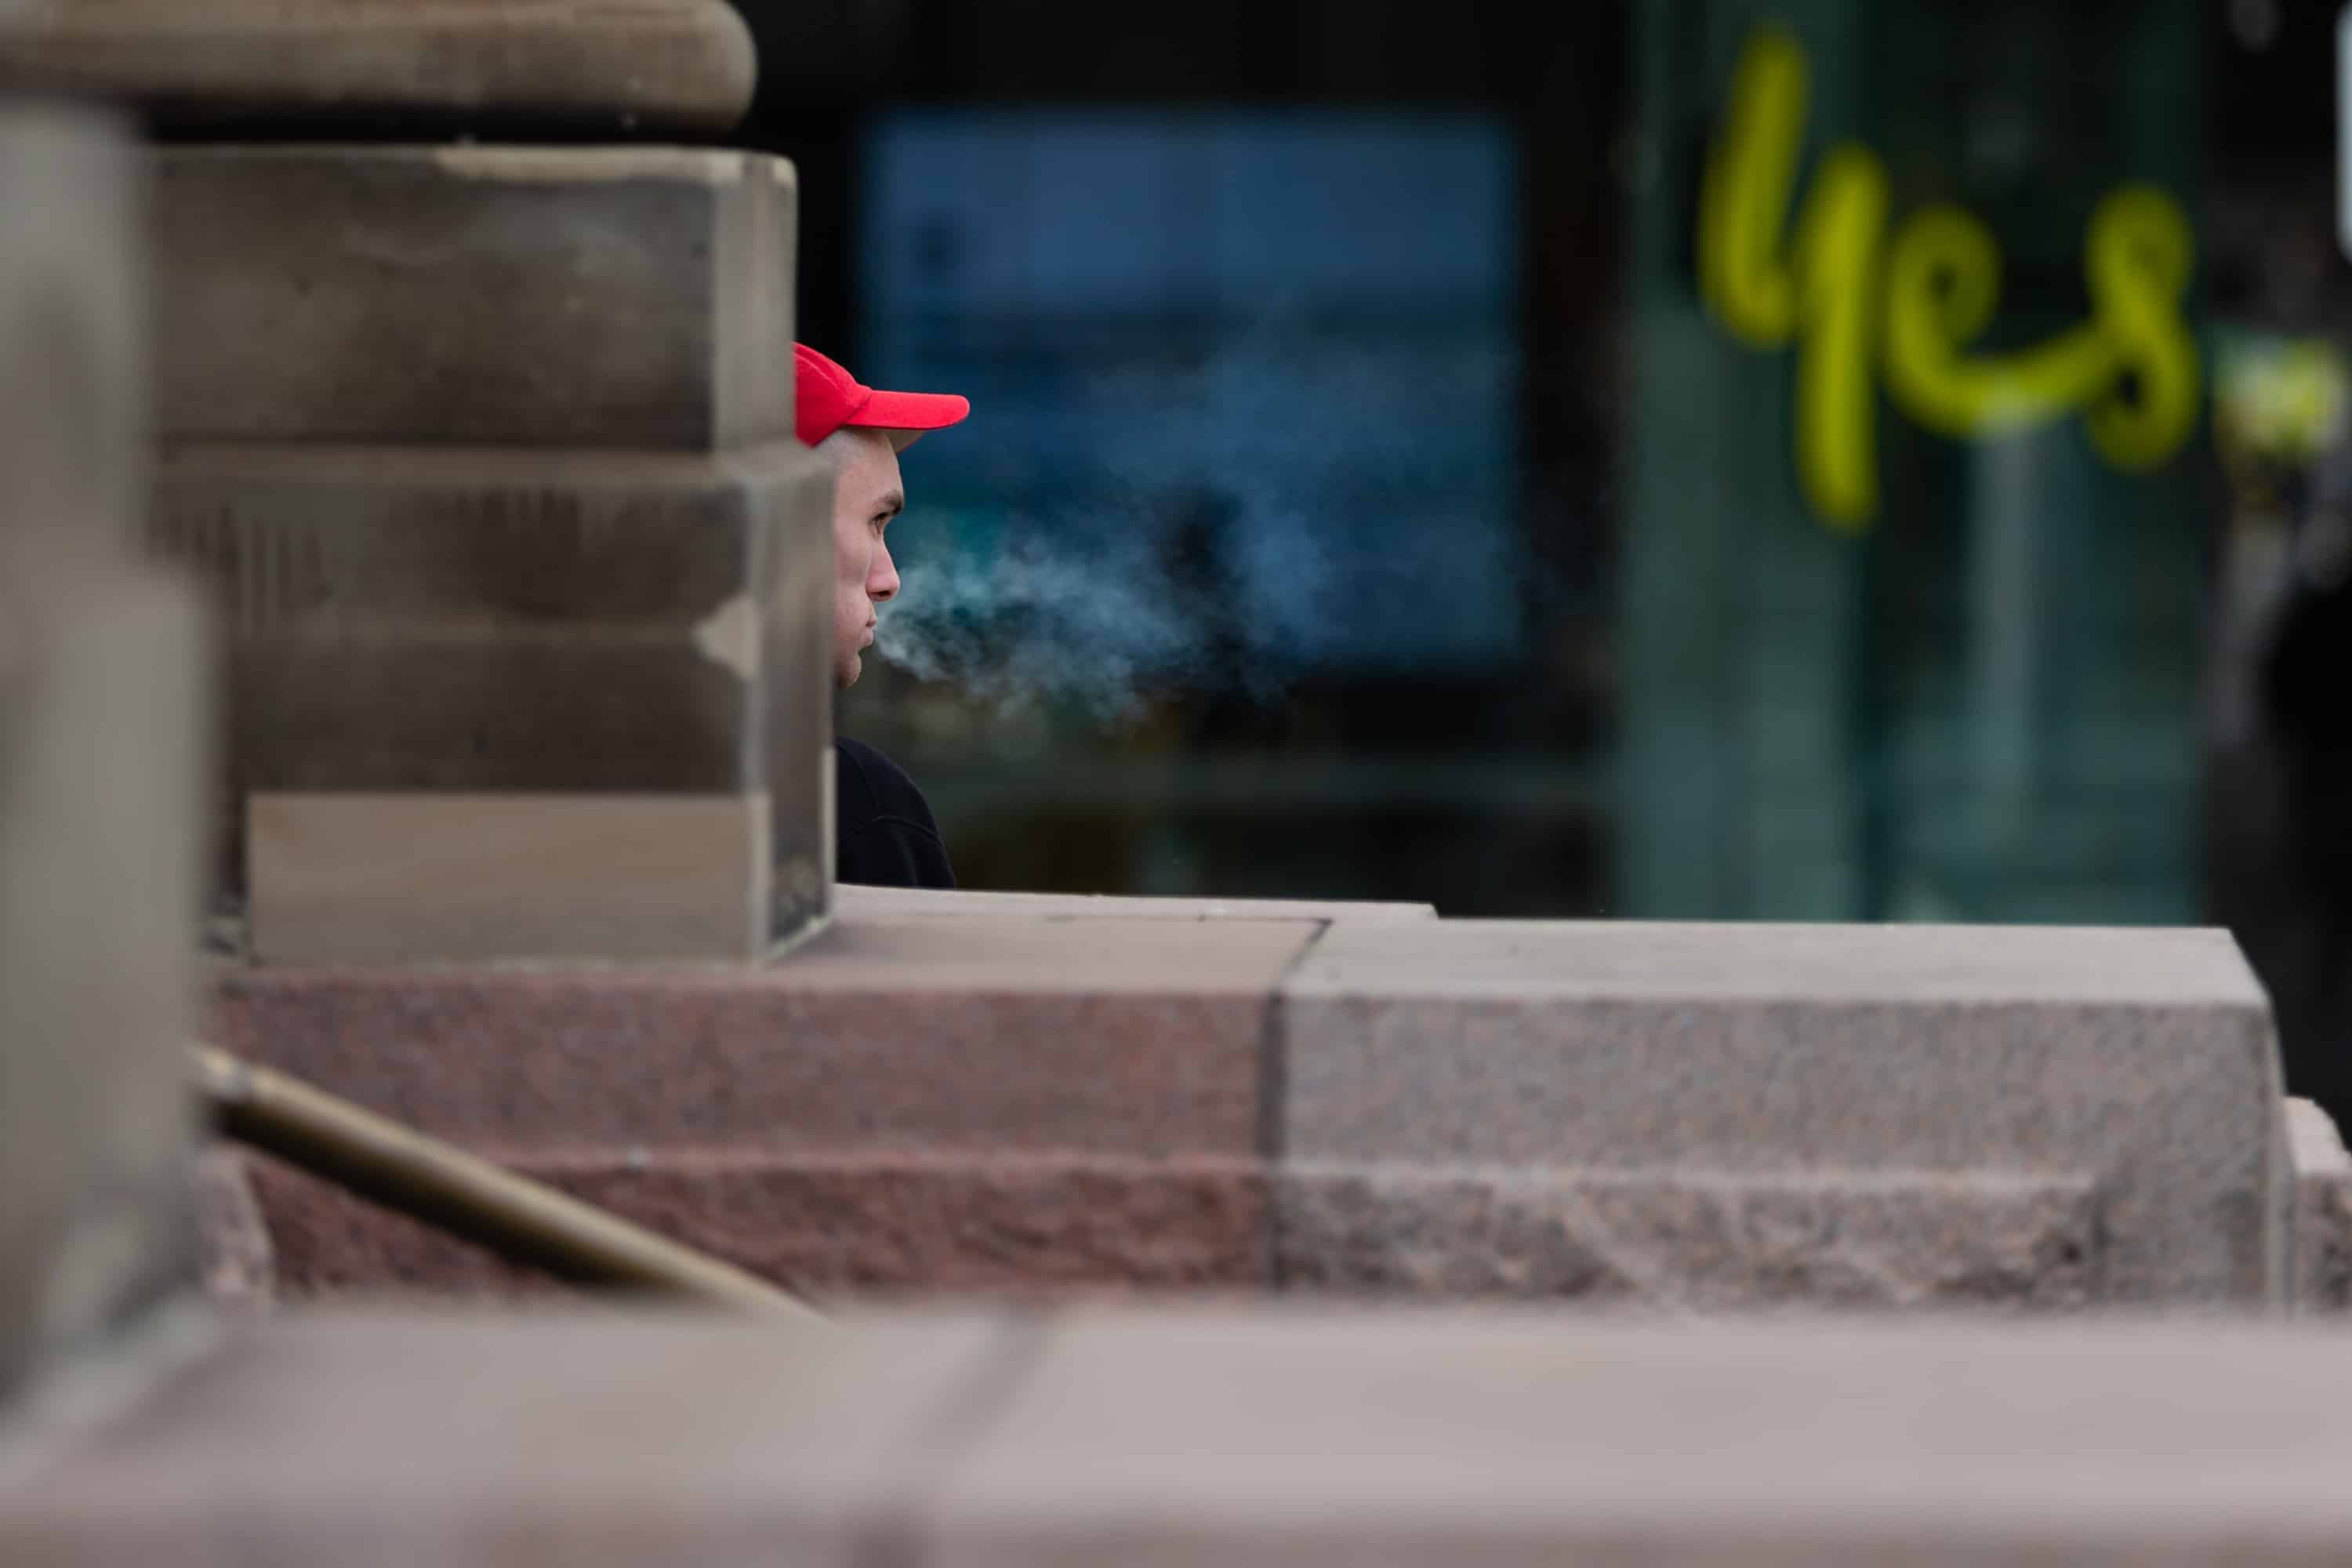 A man is seen smoking in the Bourke Street Mall during COVID-19 in Melbourne, Australia. Victoria records a further 76 cases of Coronavirus over the past 24 hours, an increase from yesterday along with 11 deaths. This comes amid news that AstraZeneca pauses vaccine study.